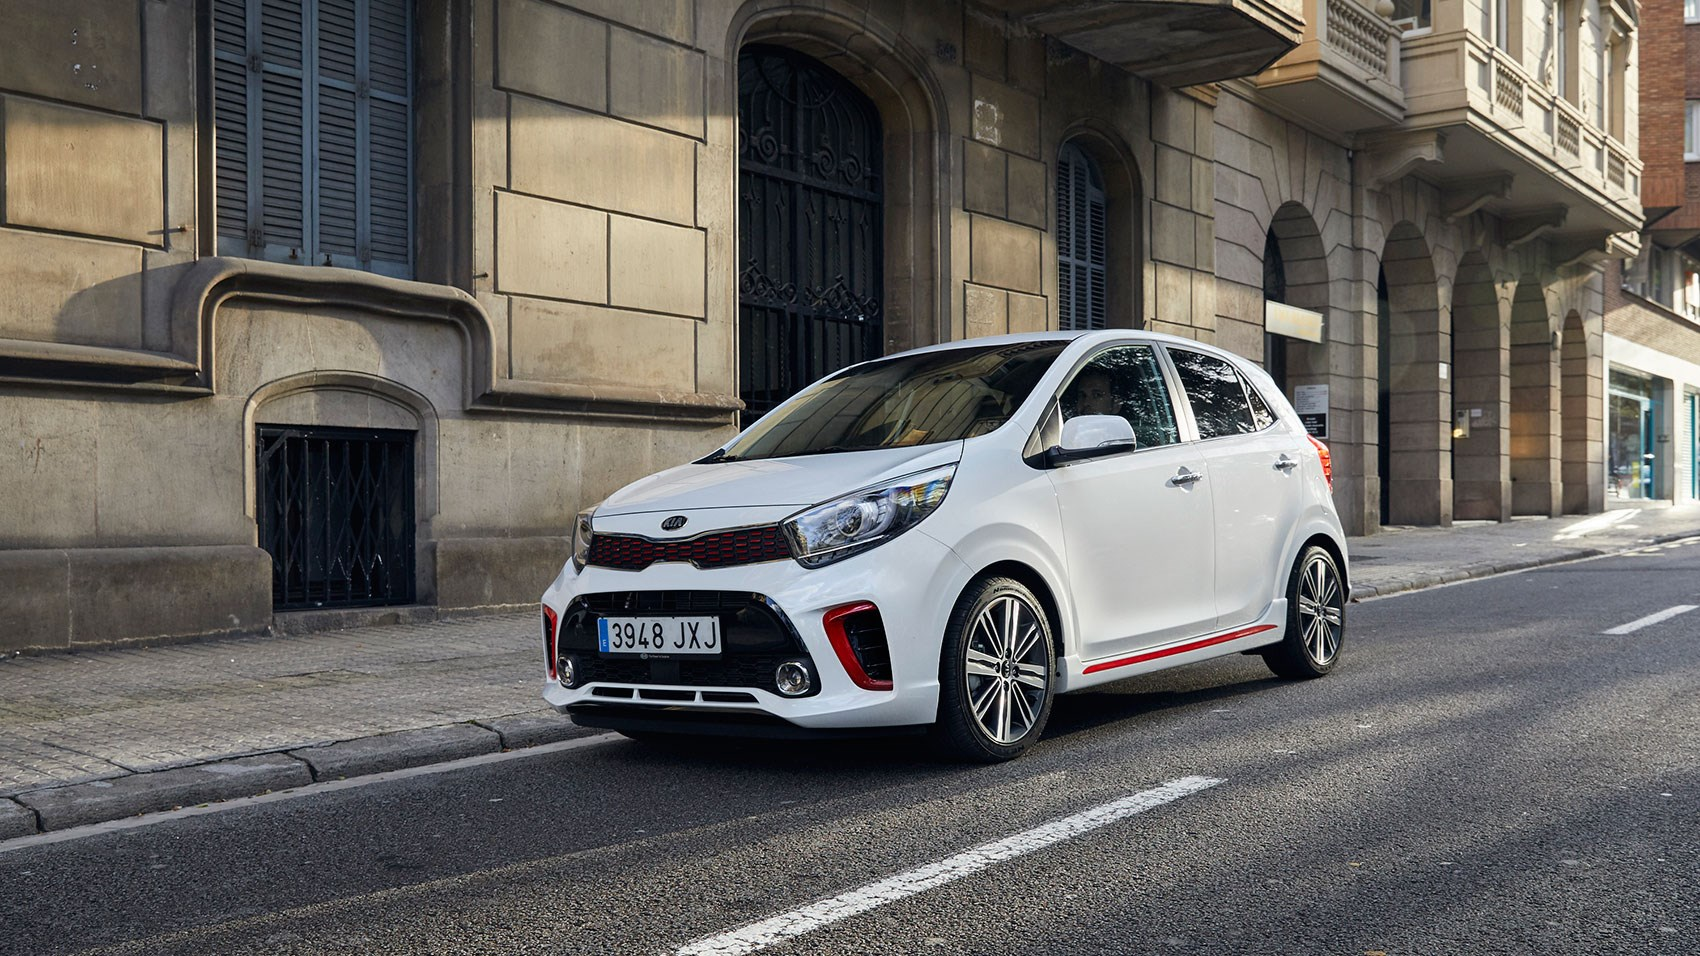 2018 kia picanto gt. simple picanto photo gallery intended 2018 kia picanto gt